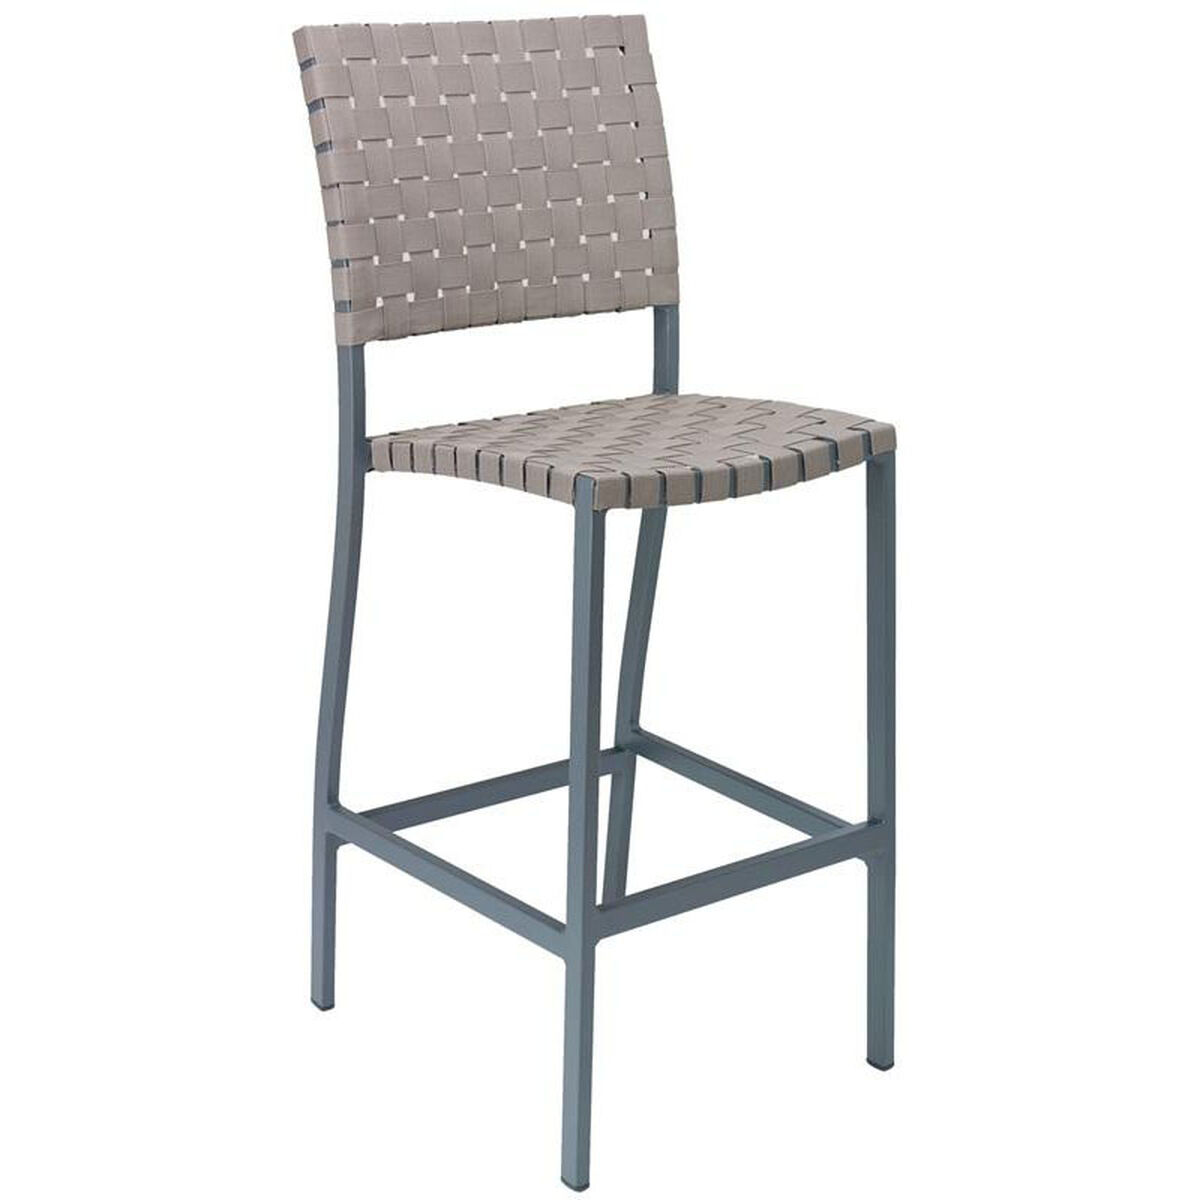 Outdoor Armless Barstool Bal 5800 S Anthrcite Brown